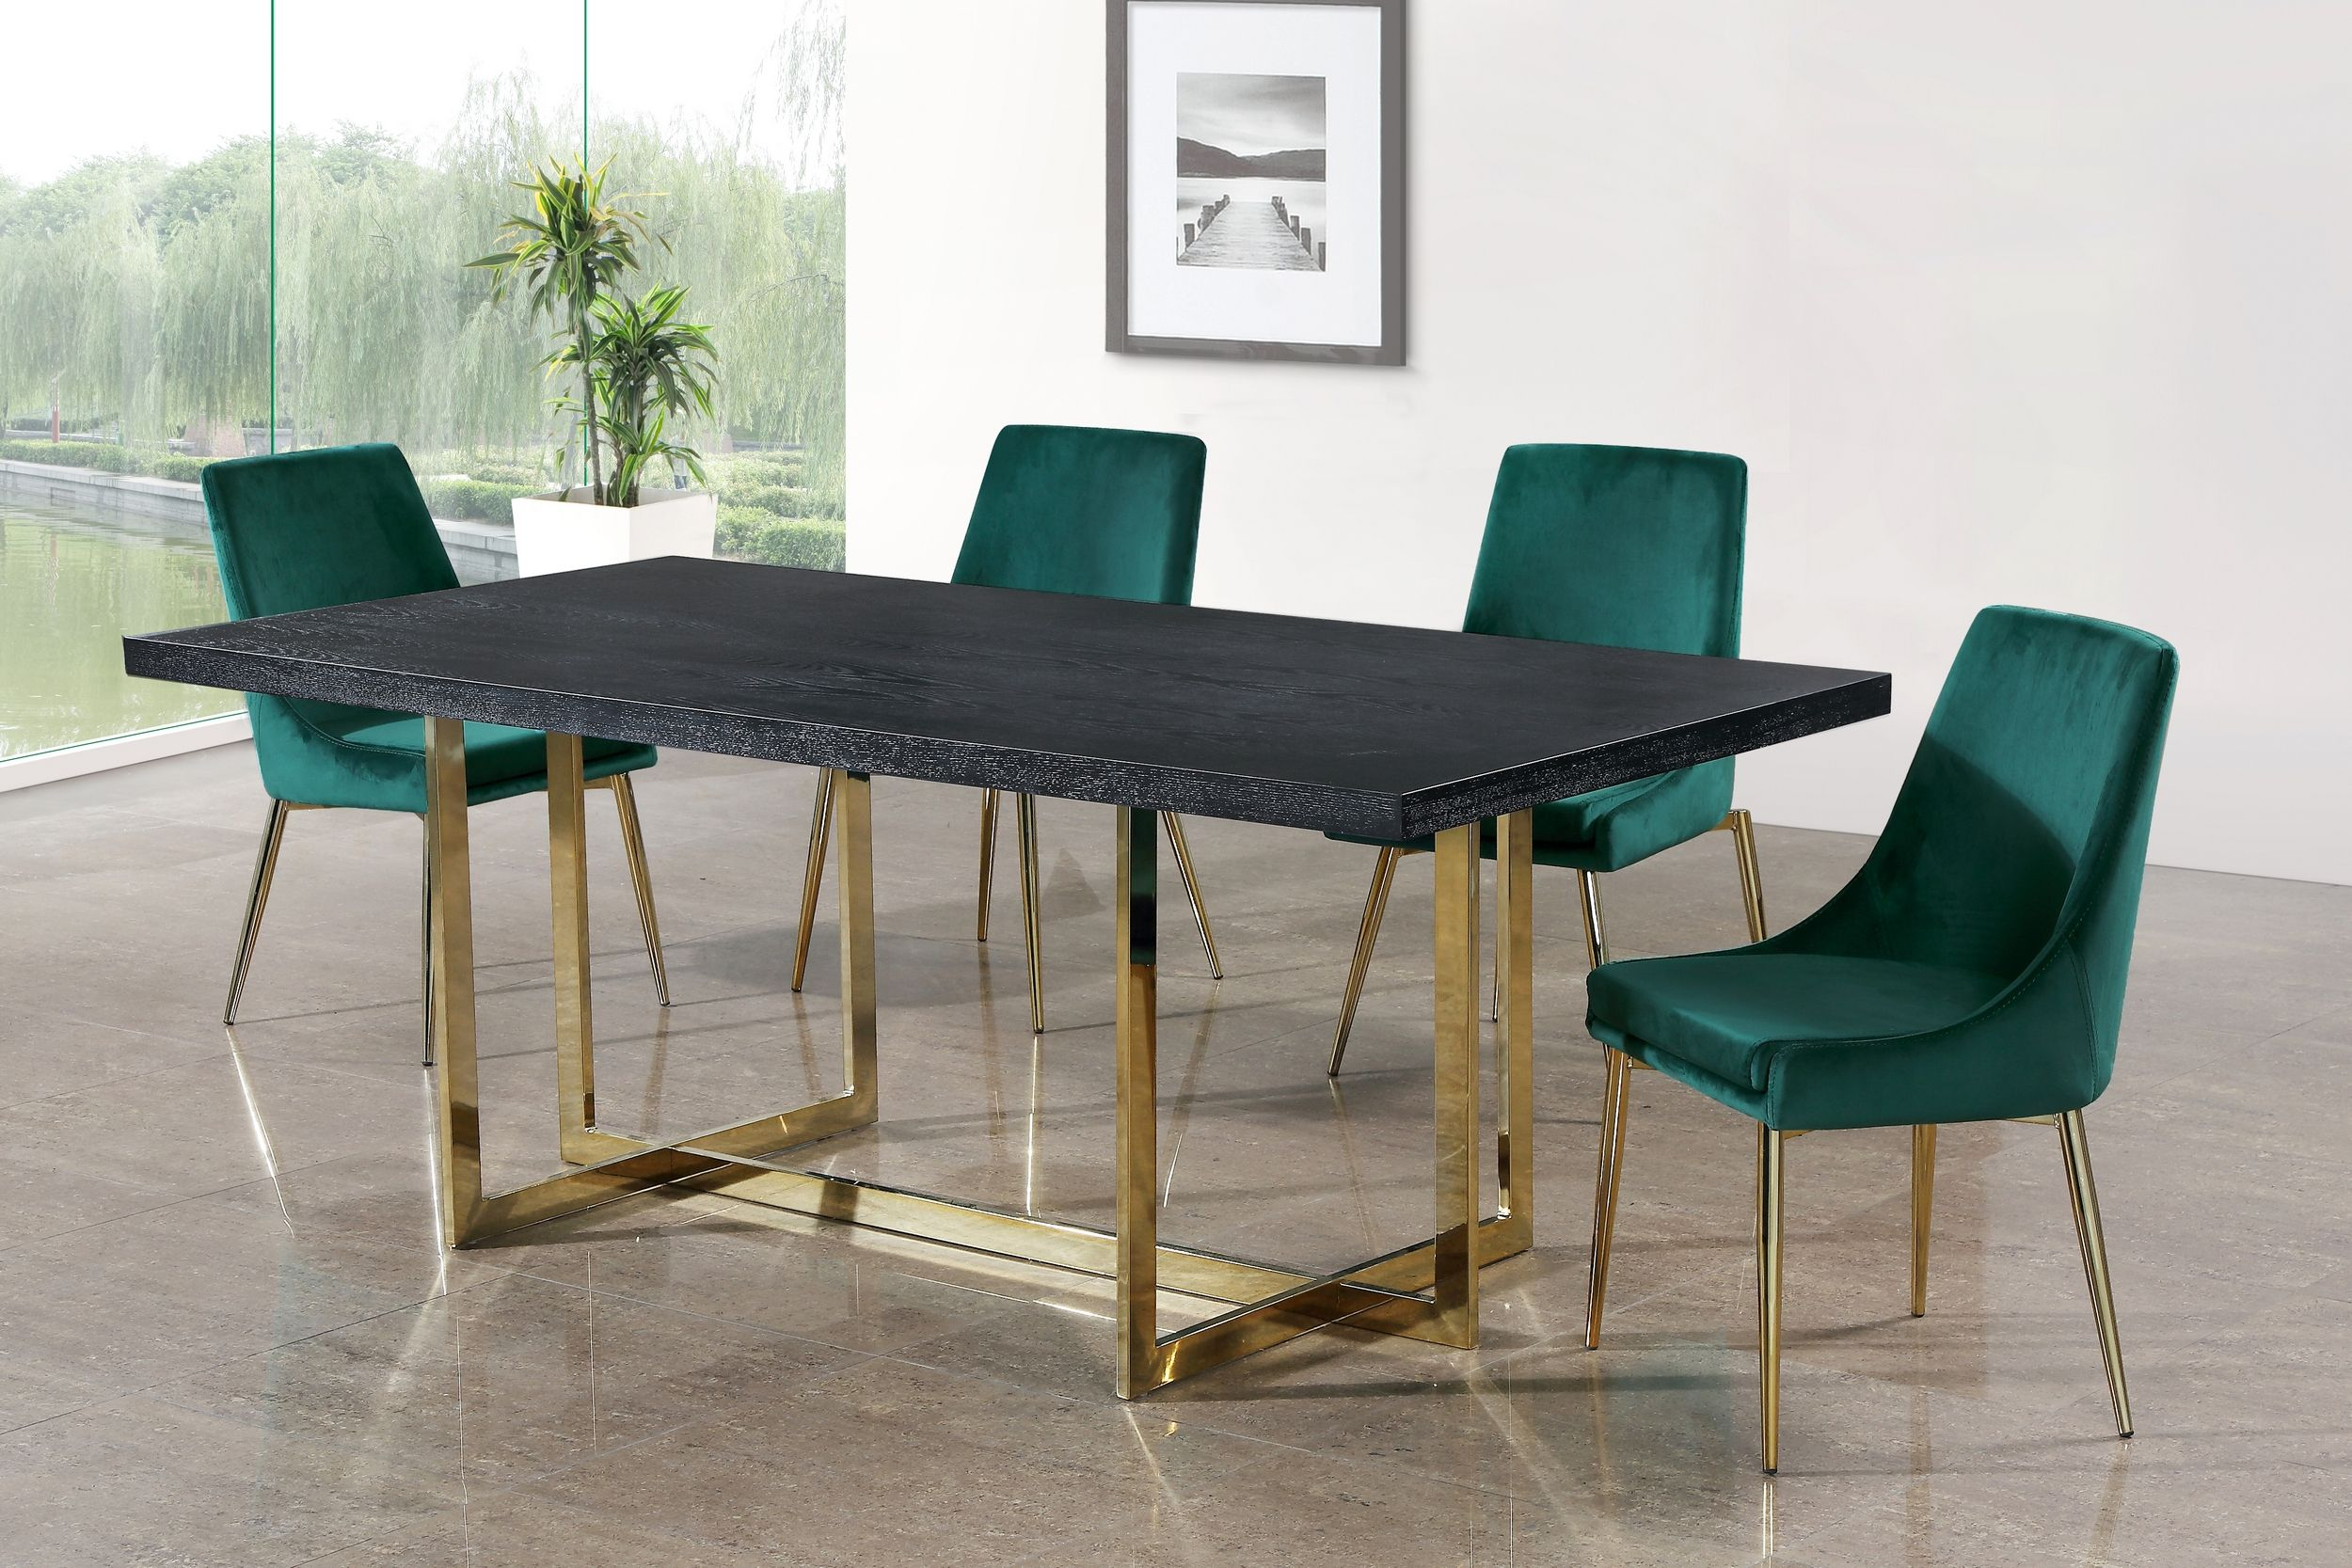 Meridian Elle Karina Green Gold 5 Piece Dining Table Set Reviews Goedekers Com Green Dining Chairs Gold Dining Chairs Green Dining Room